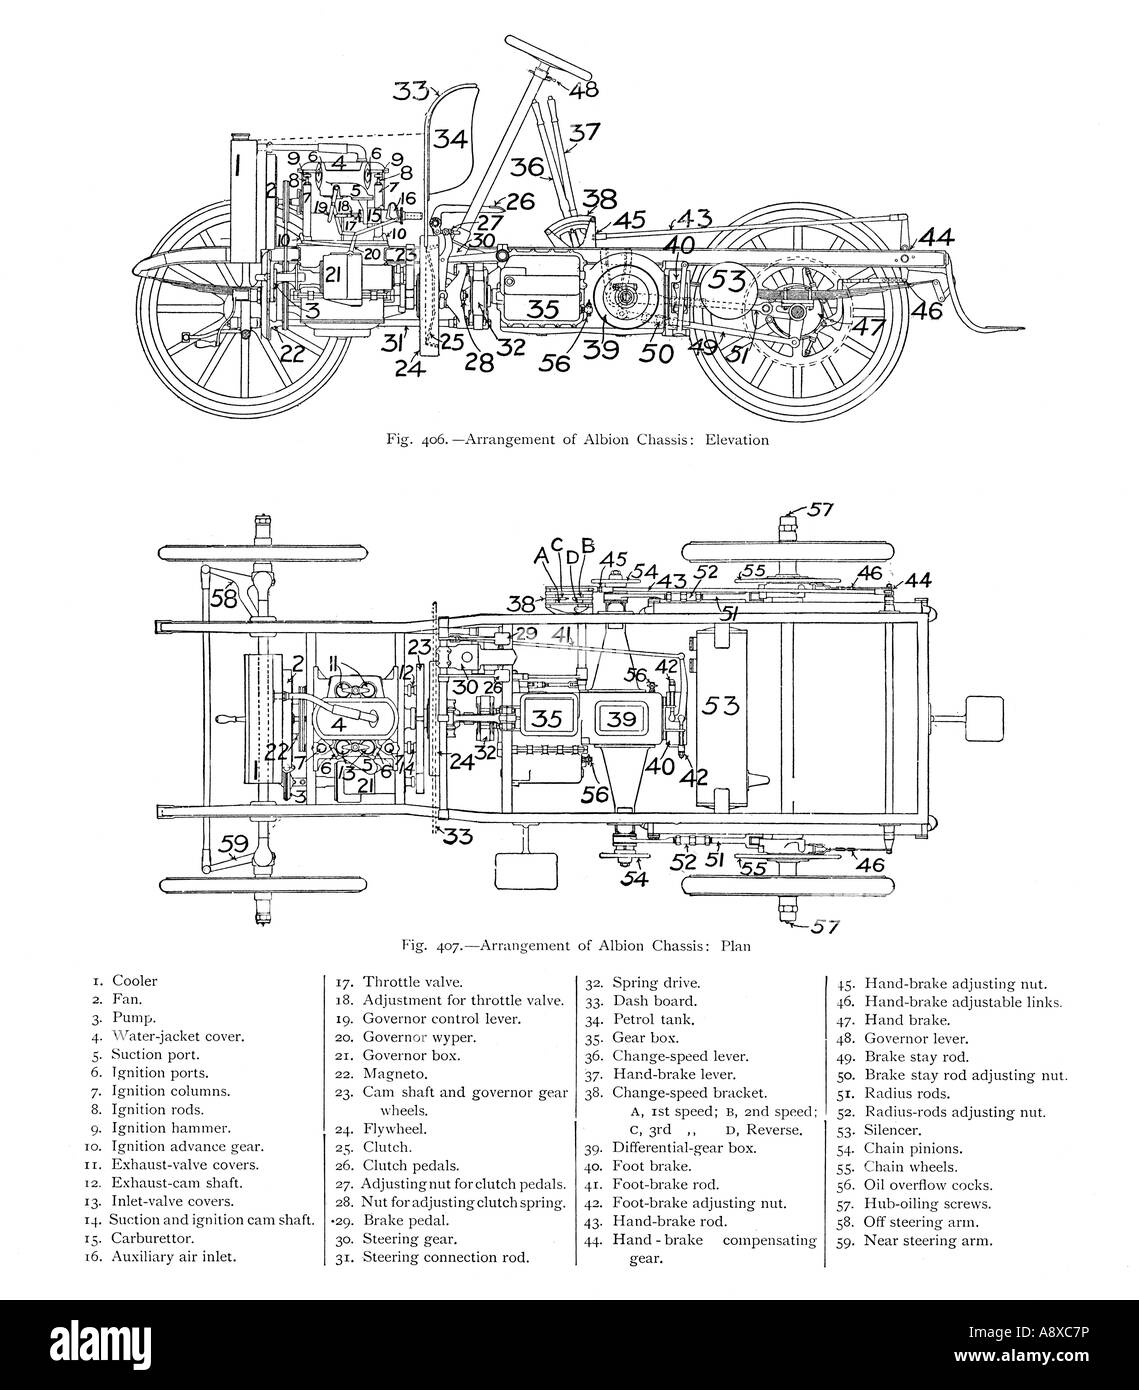 vintage car engine diagram stock photos vintage car engine diagram rh alamy com Engine Diagram with Labels Simple Engine Diagram